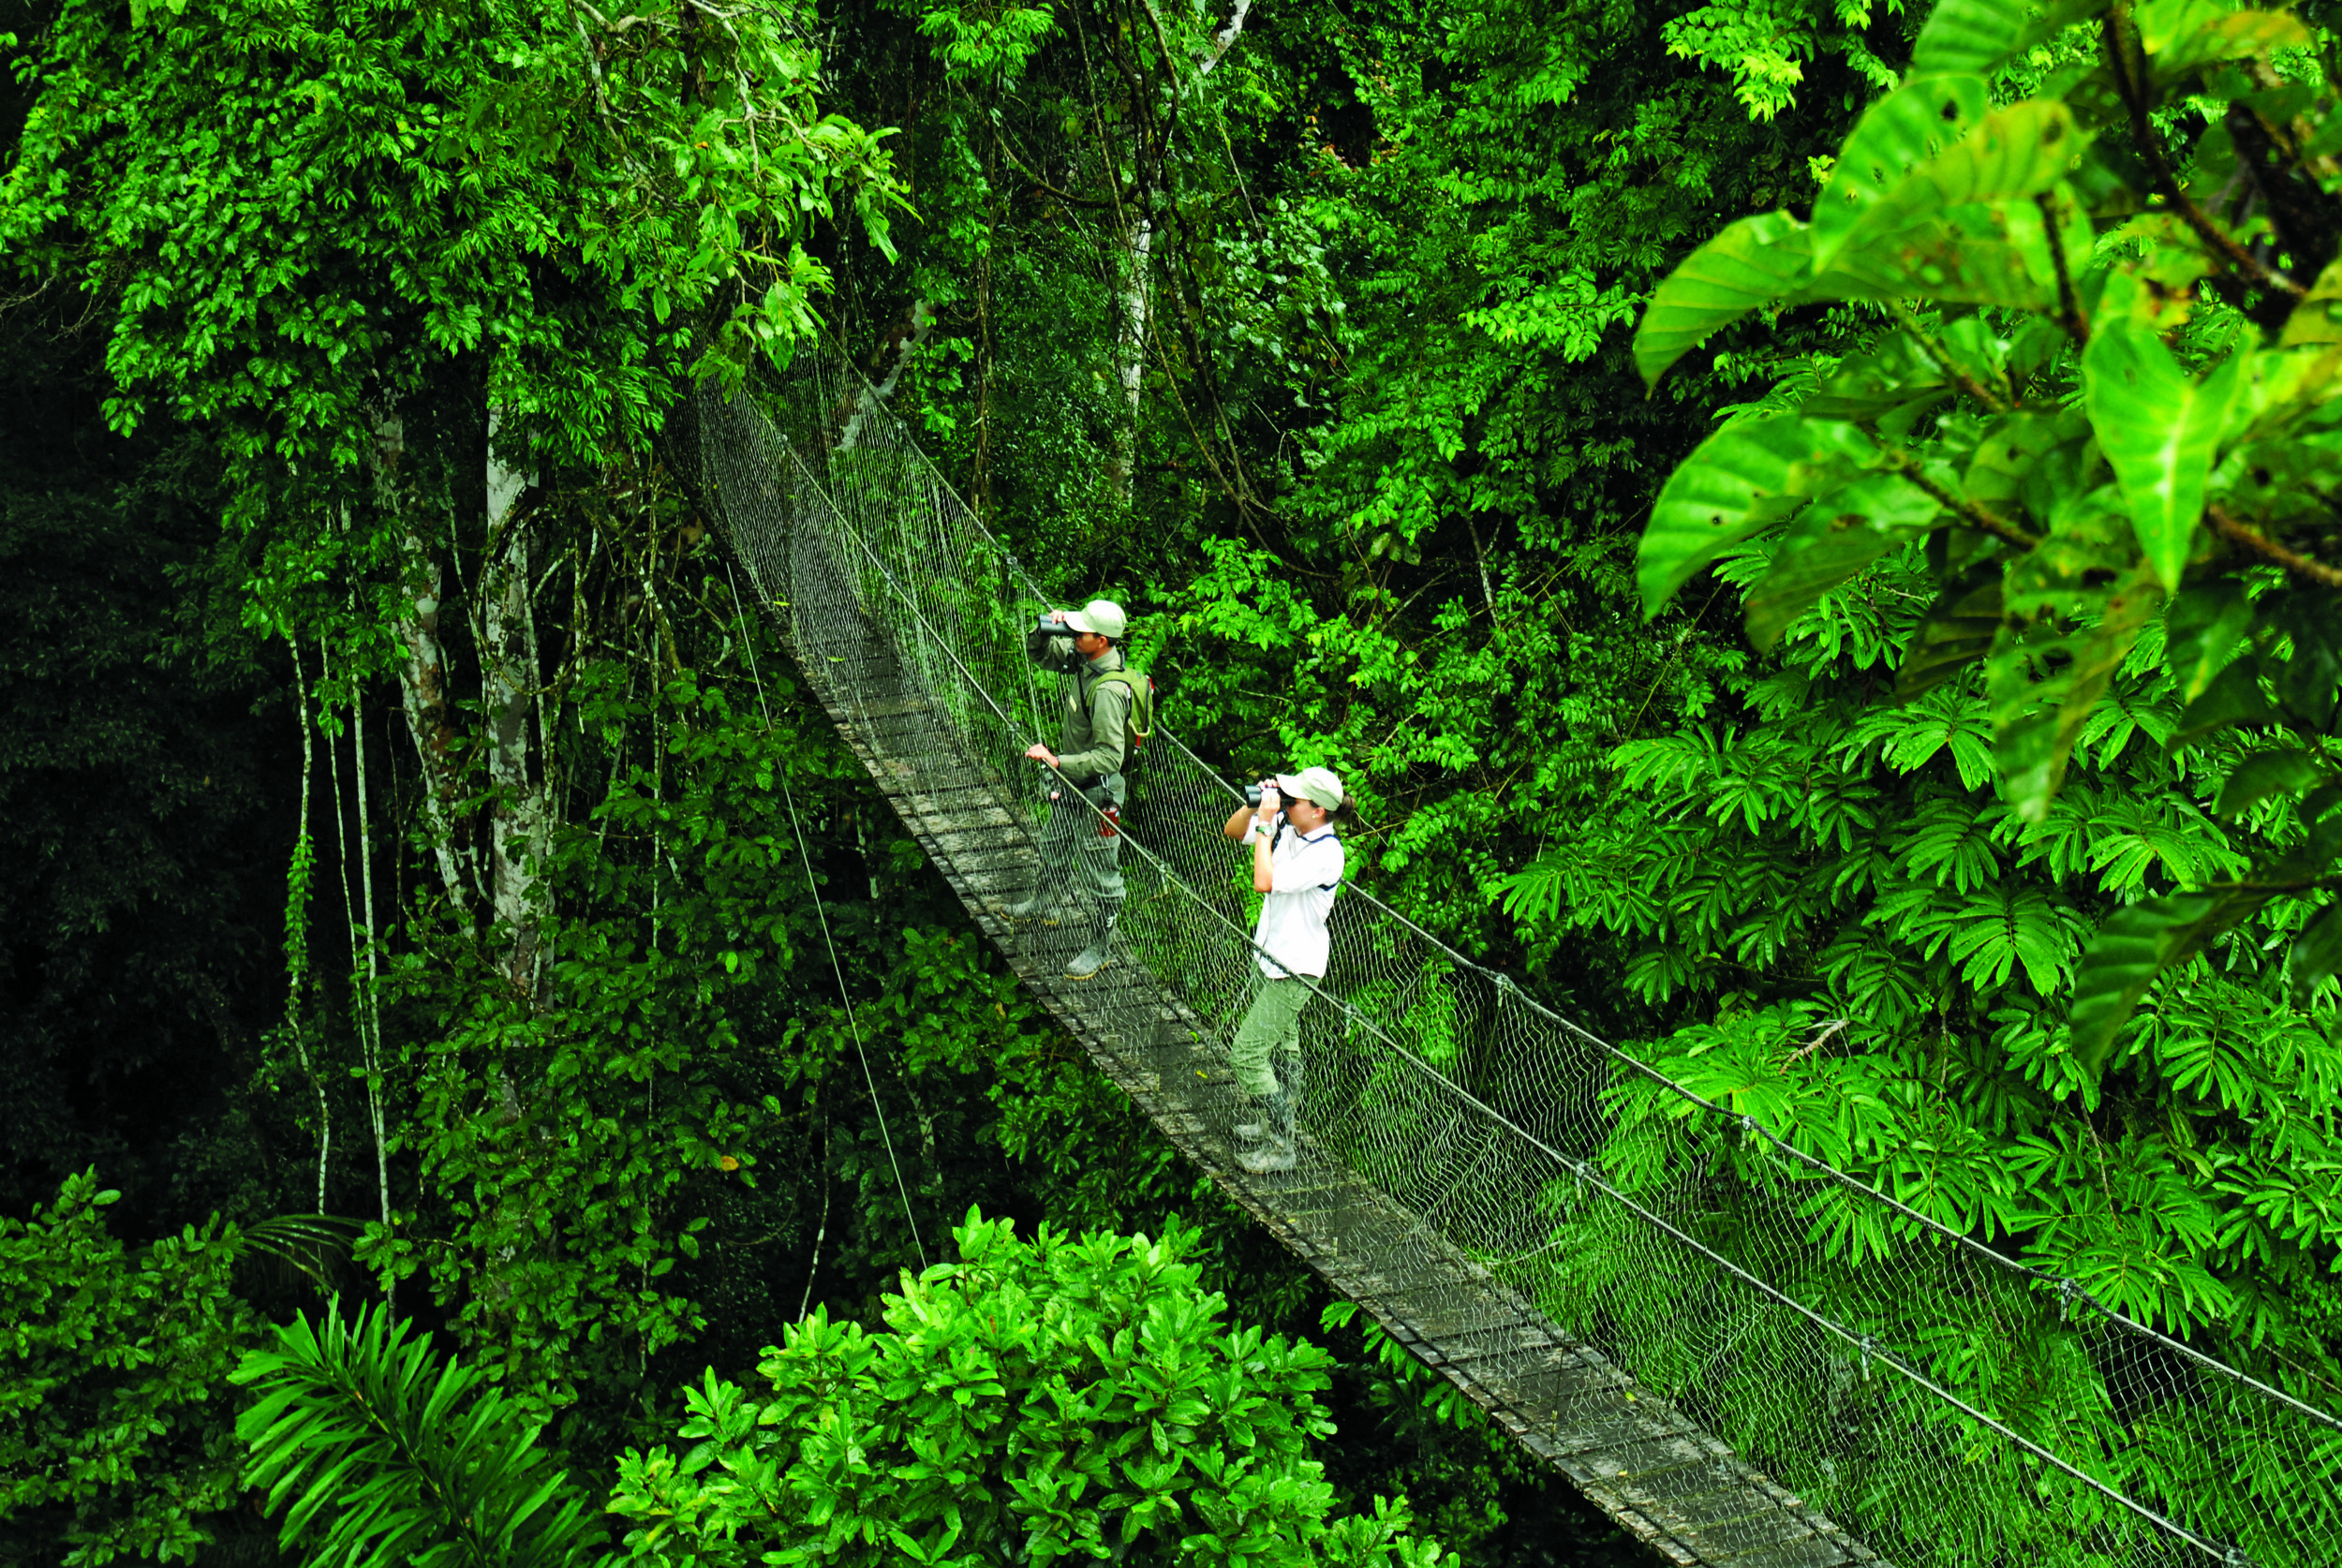 Reserva Amazonica's Canopy Walkway takes guests 100' above the rainforest floor